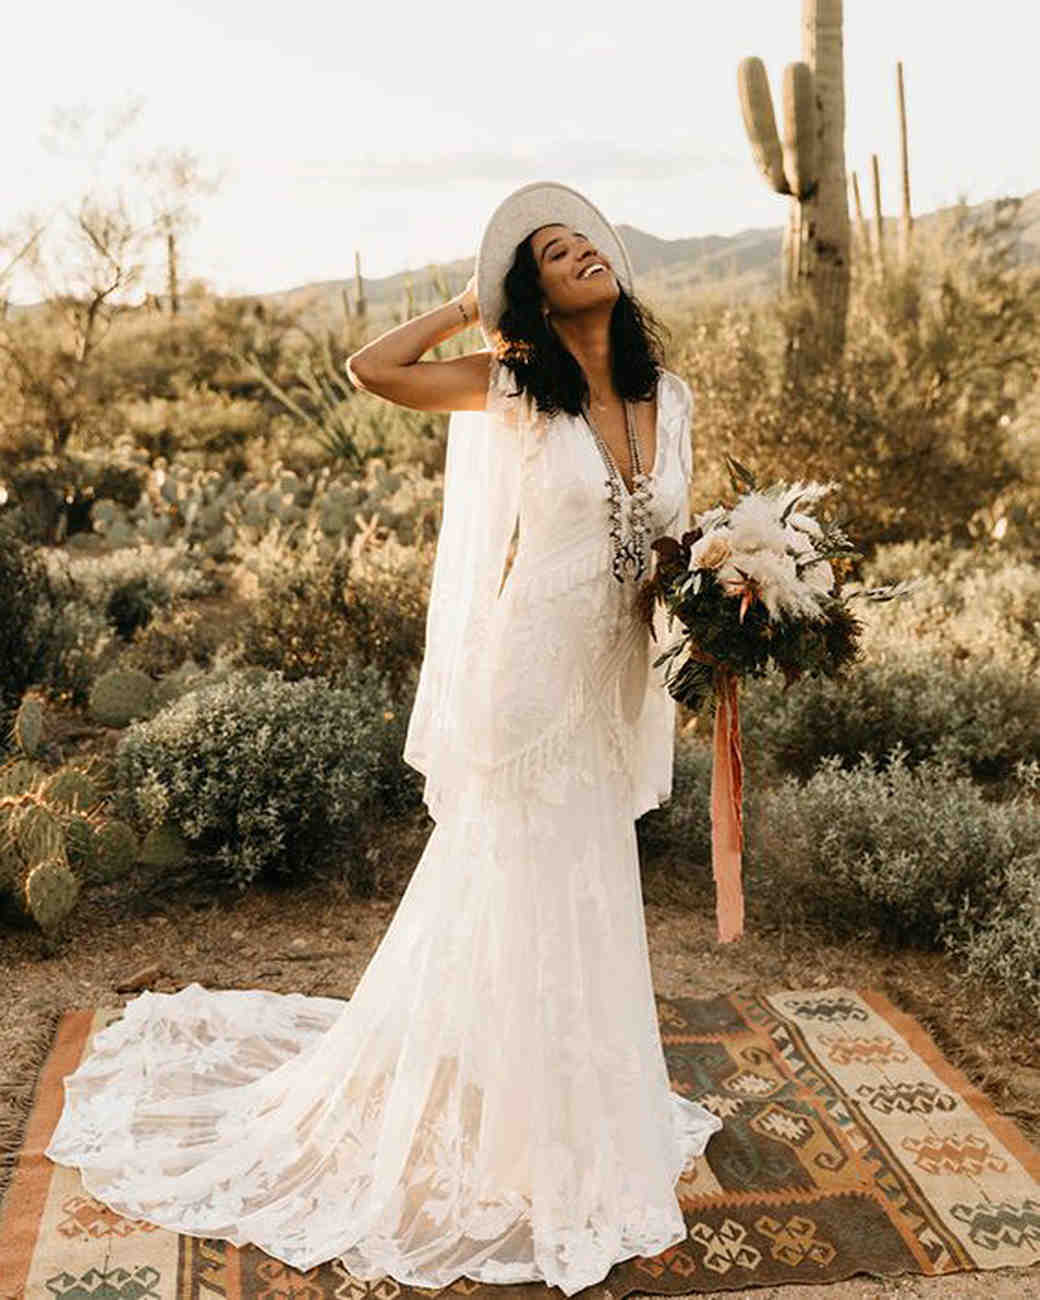 20 Most Perfect Bridal Gowns This Year: 20 Wedding Dresses Perfect For Destination Nuptials